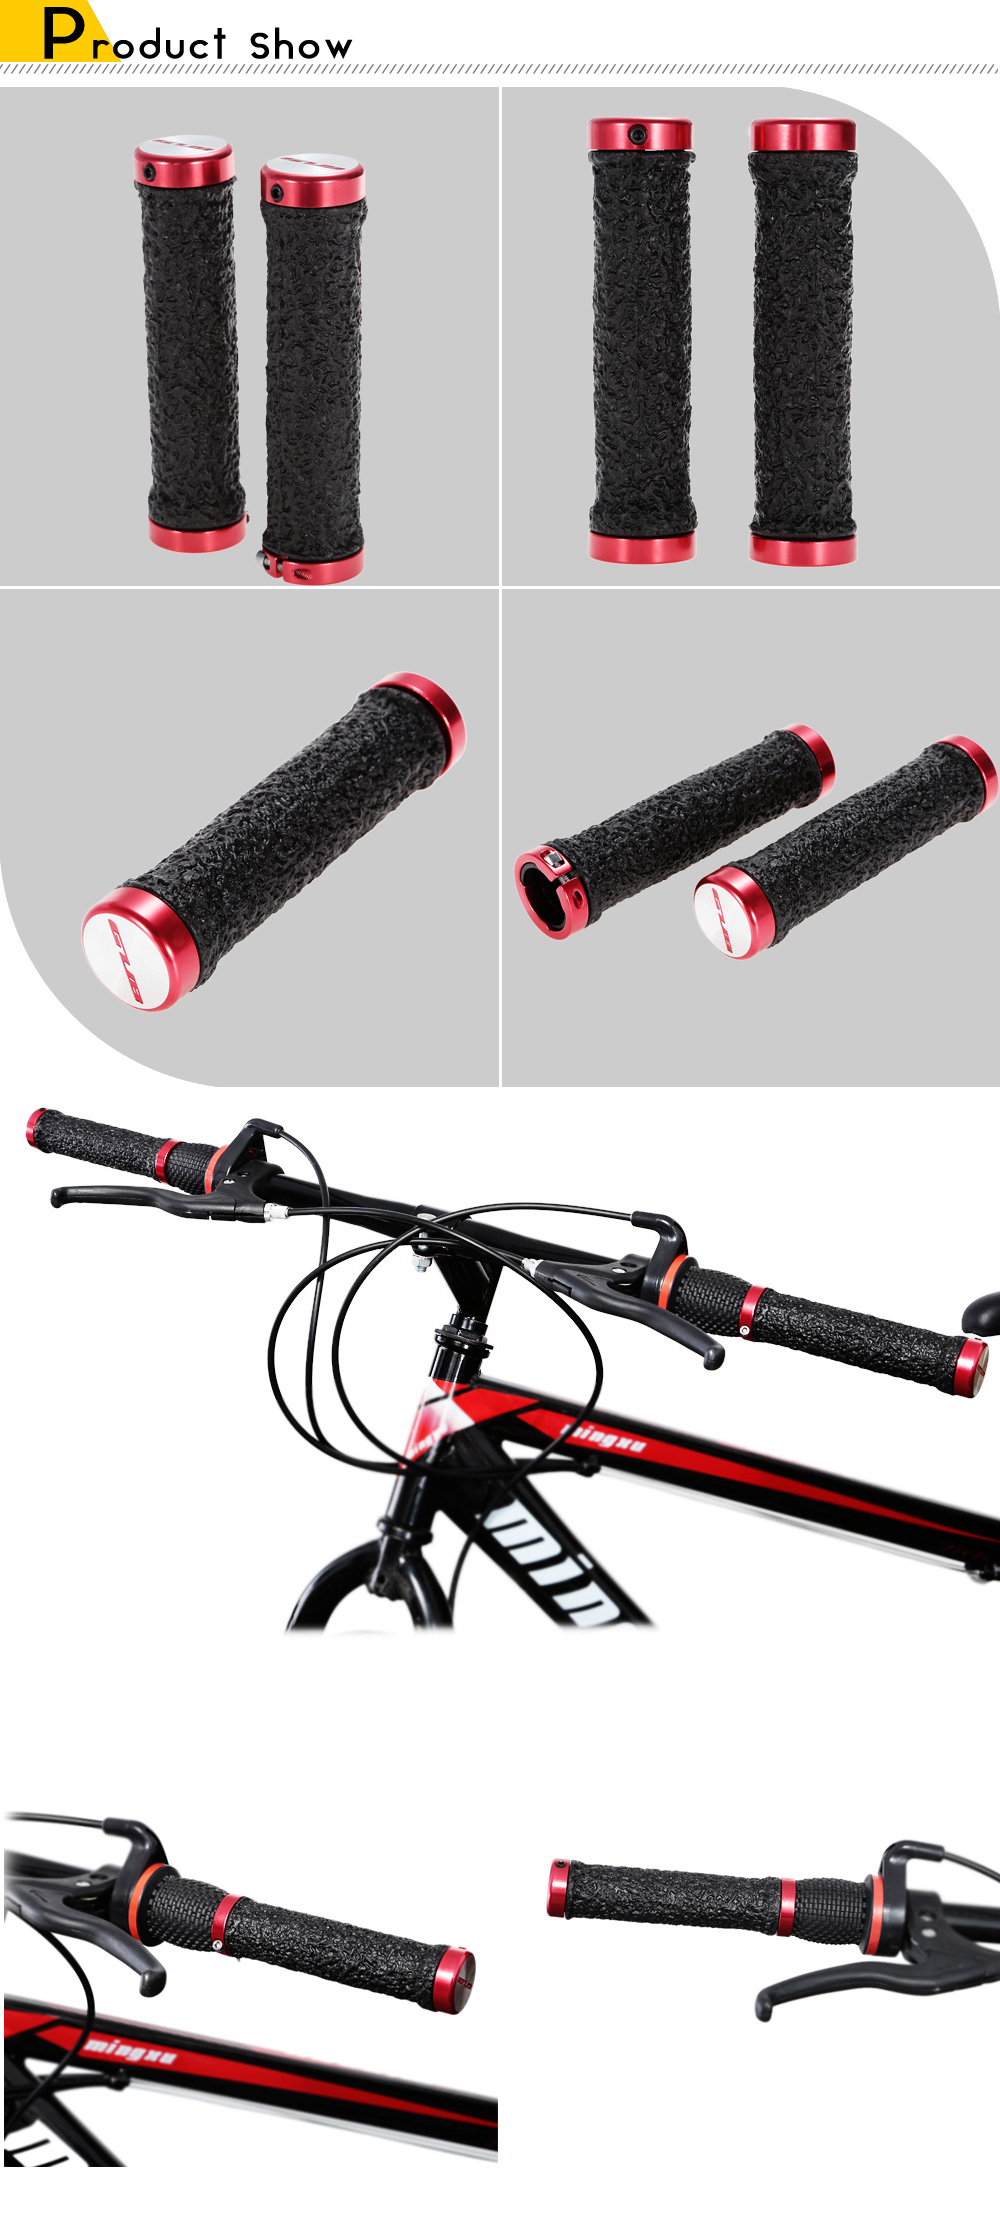 GUB 116 MTB Bike Grip Rubber Bicycle Handlebar Cover Cycling Accessories